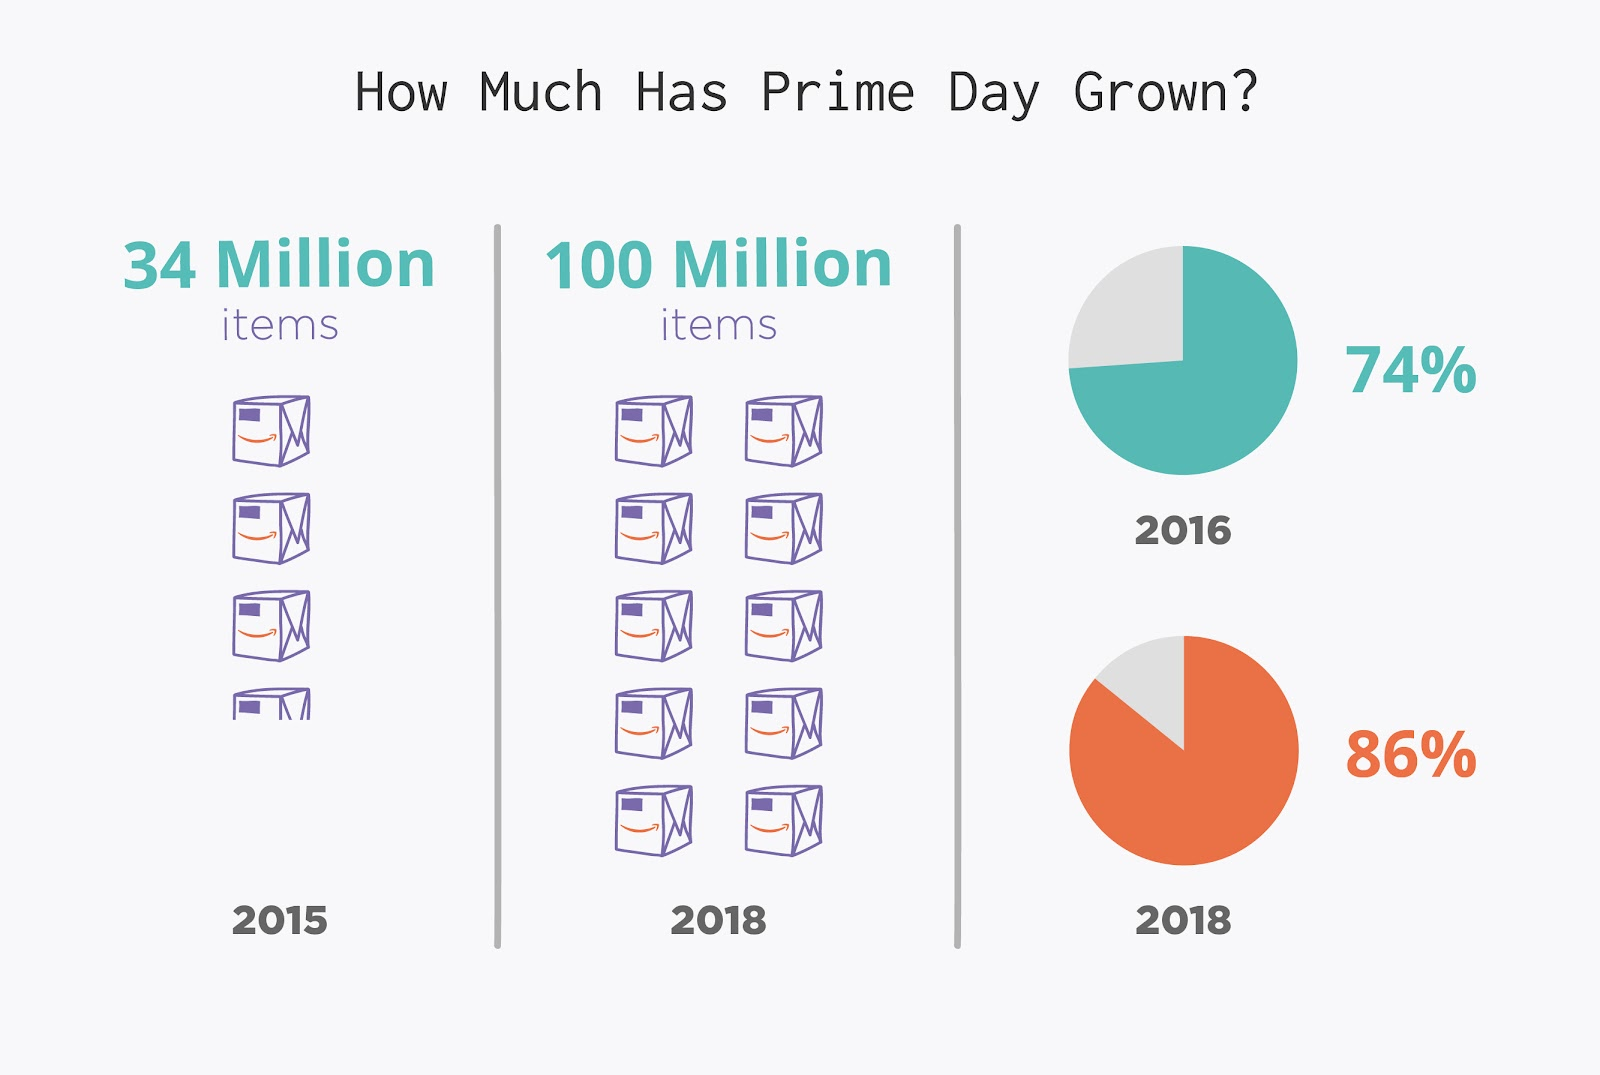 How Much Has Prime Day Grown?